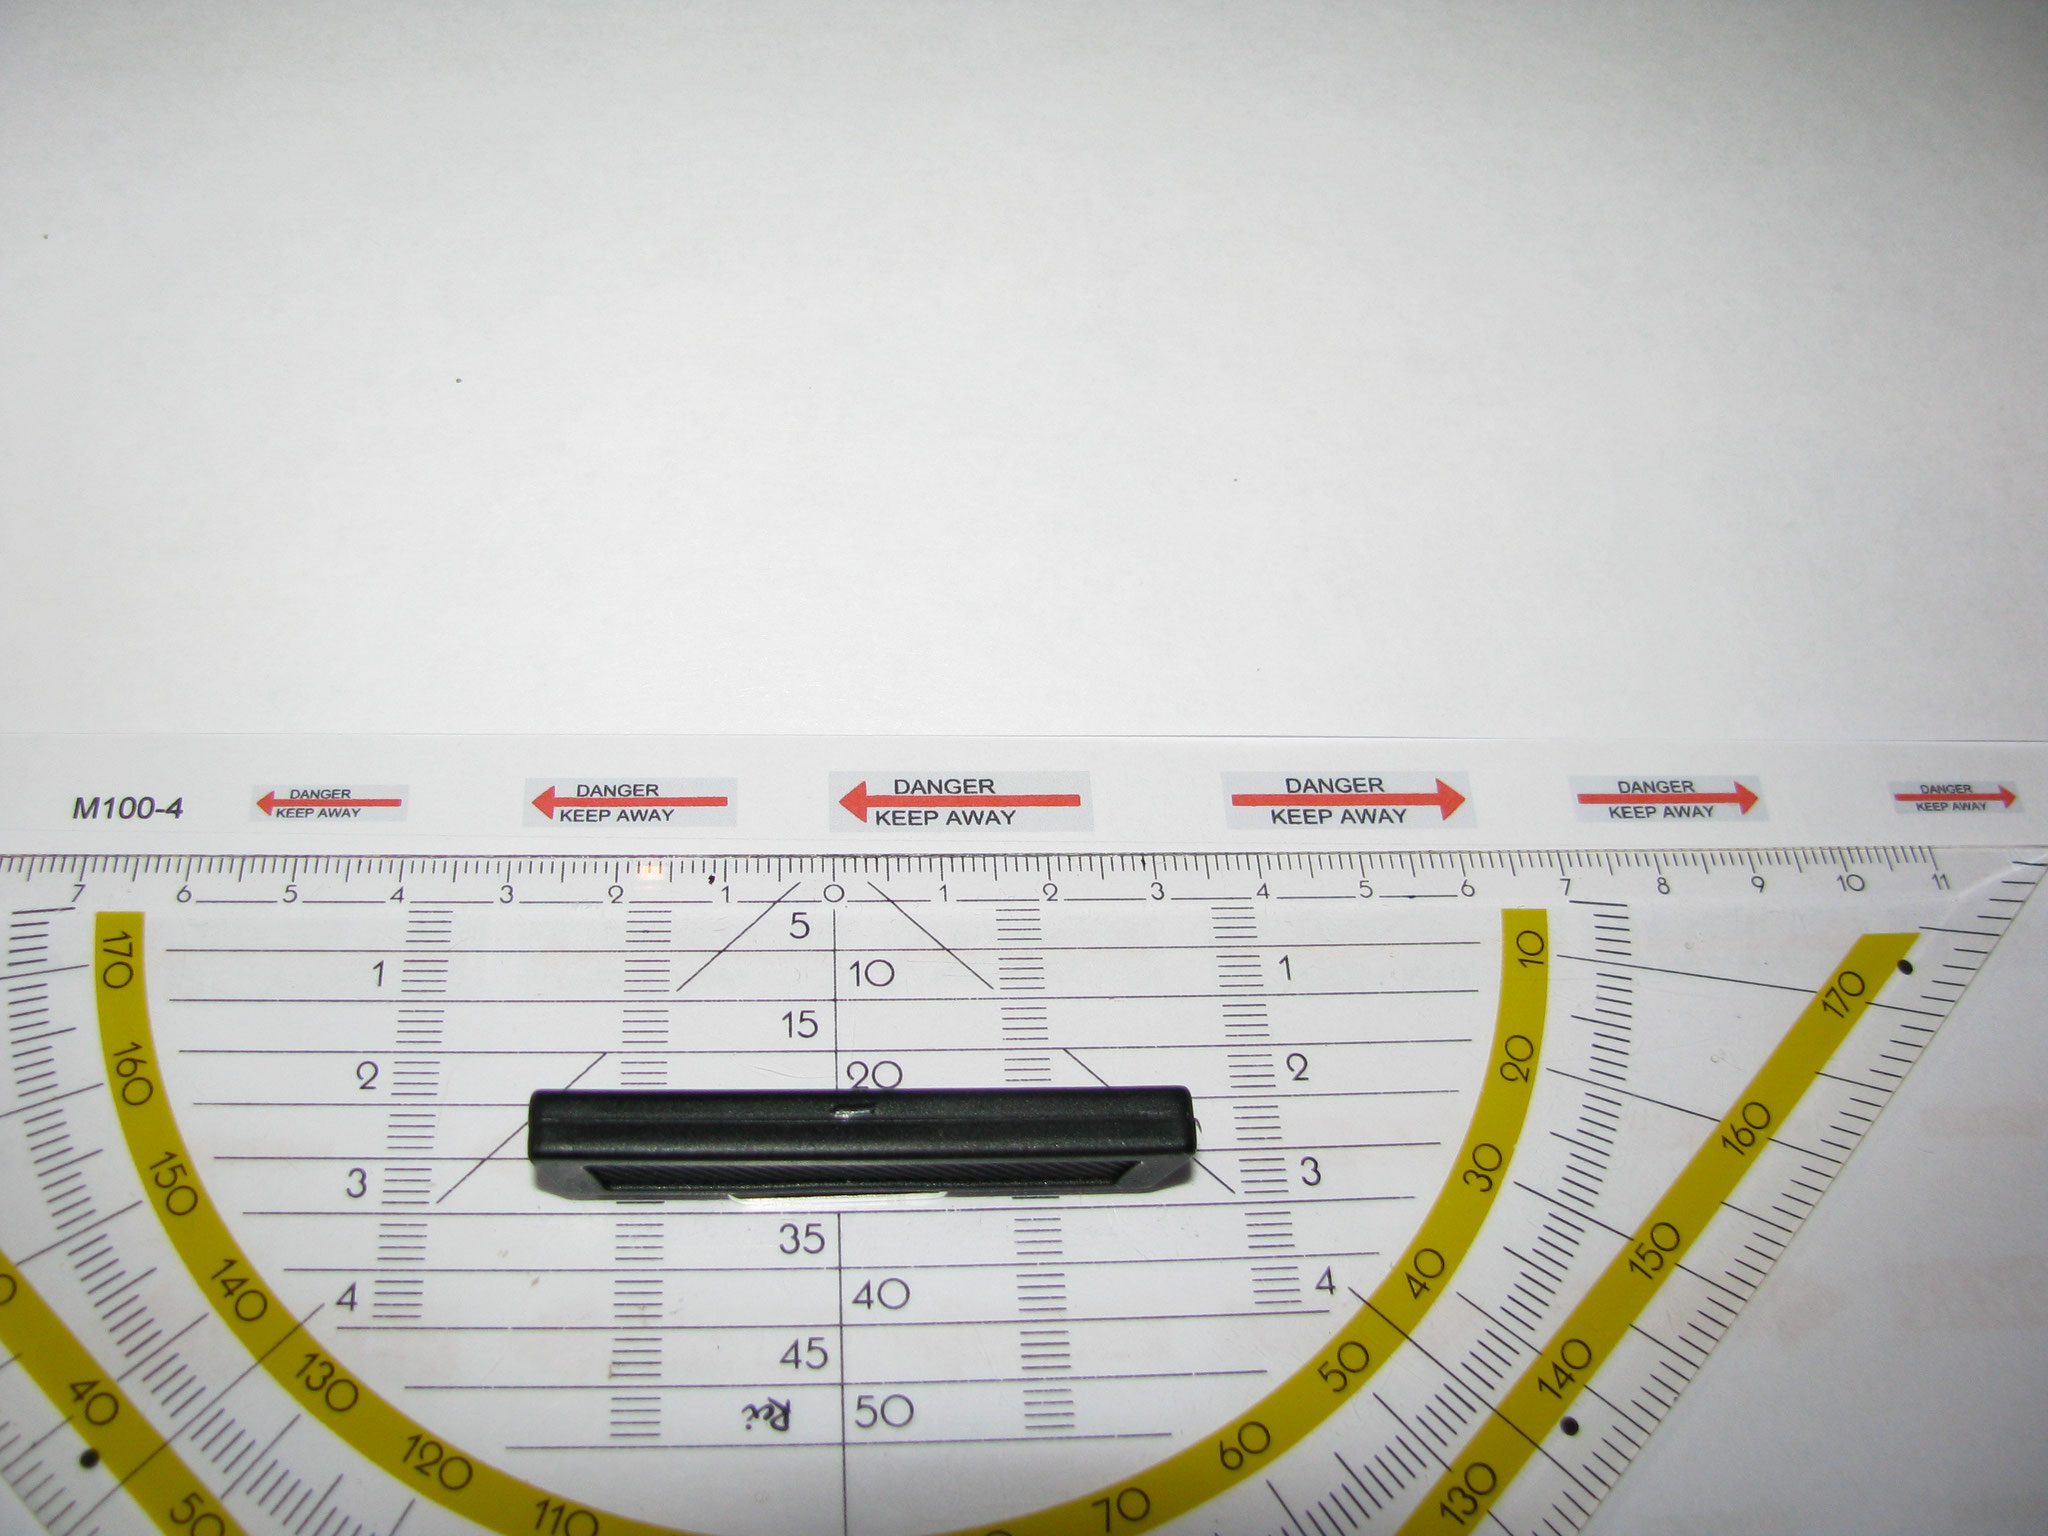 M100-4: Danger silber/rot. 6 Decals. Max 25x7mm